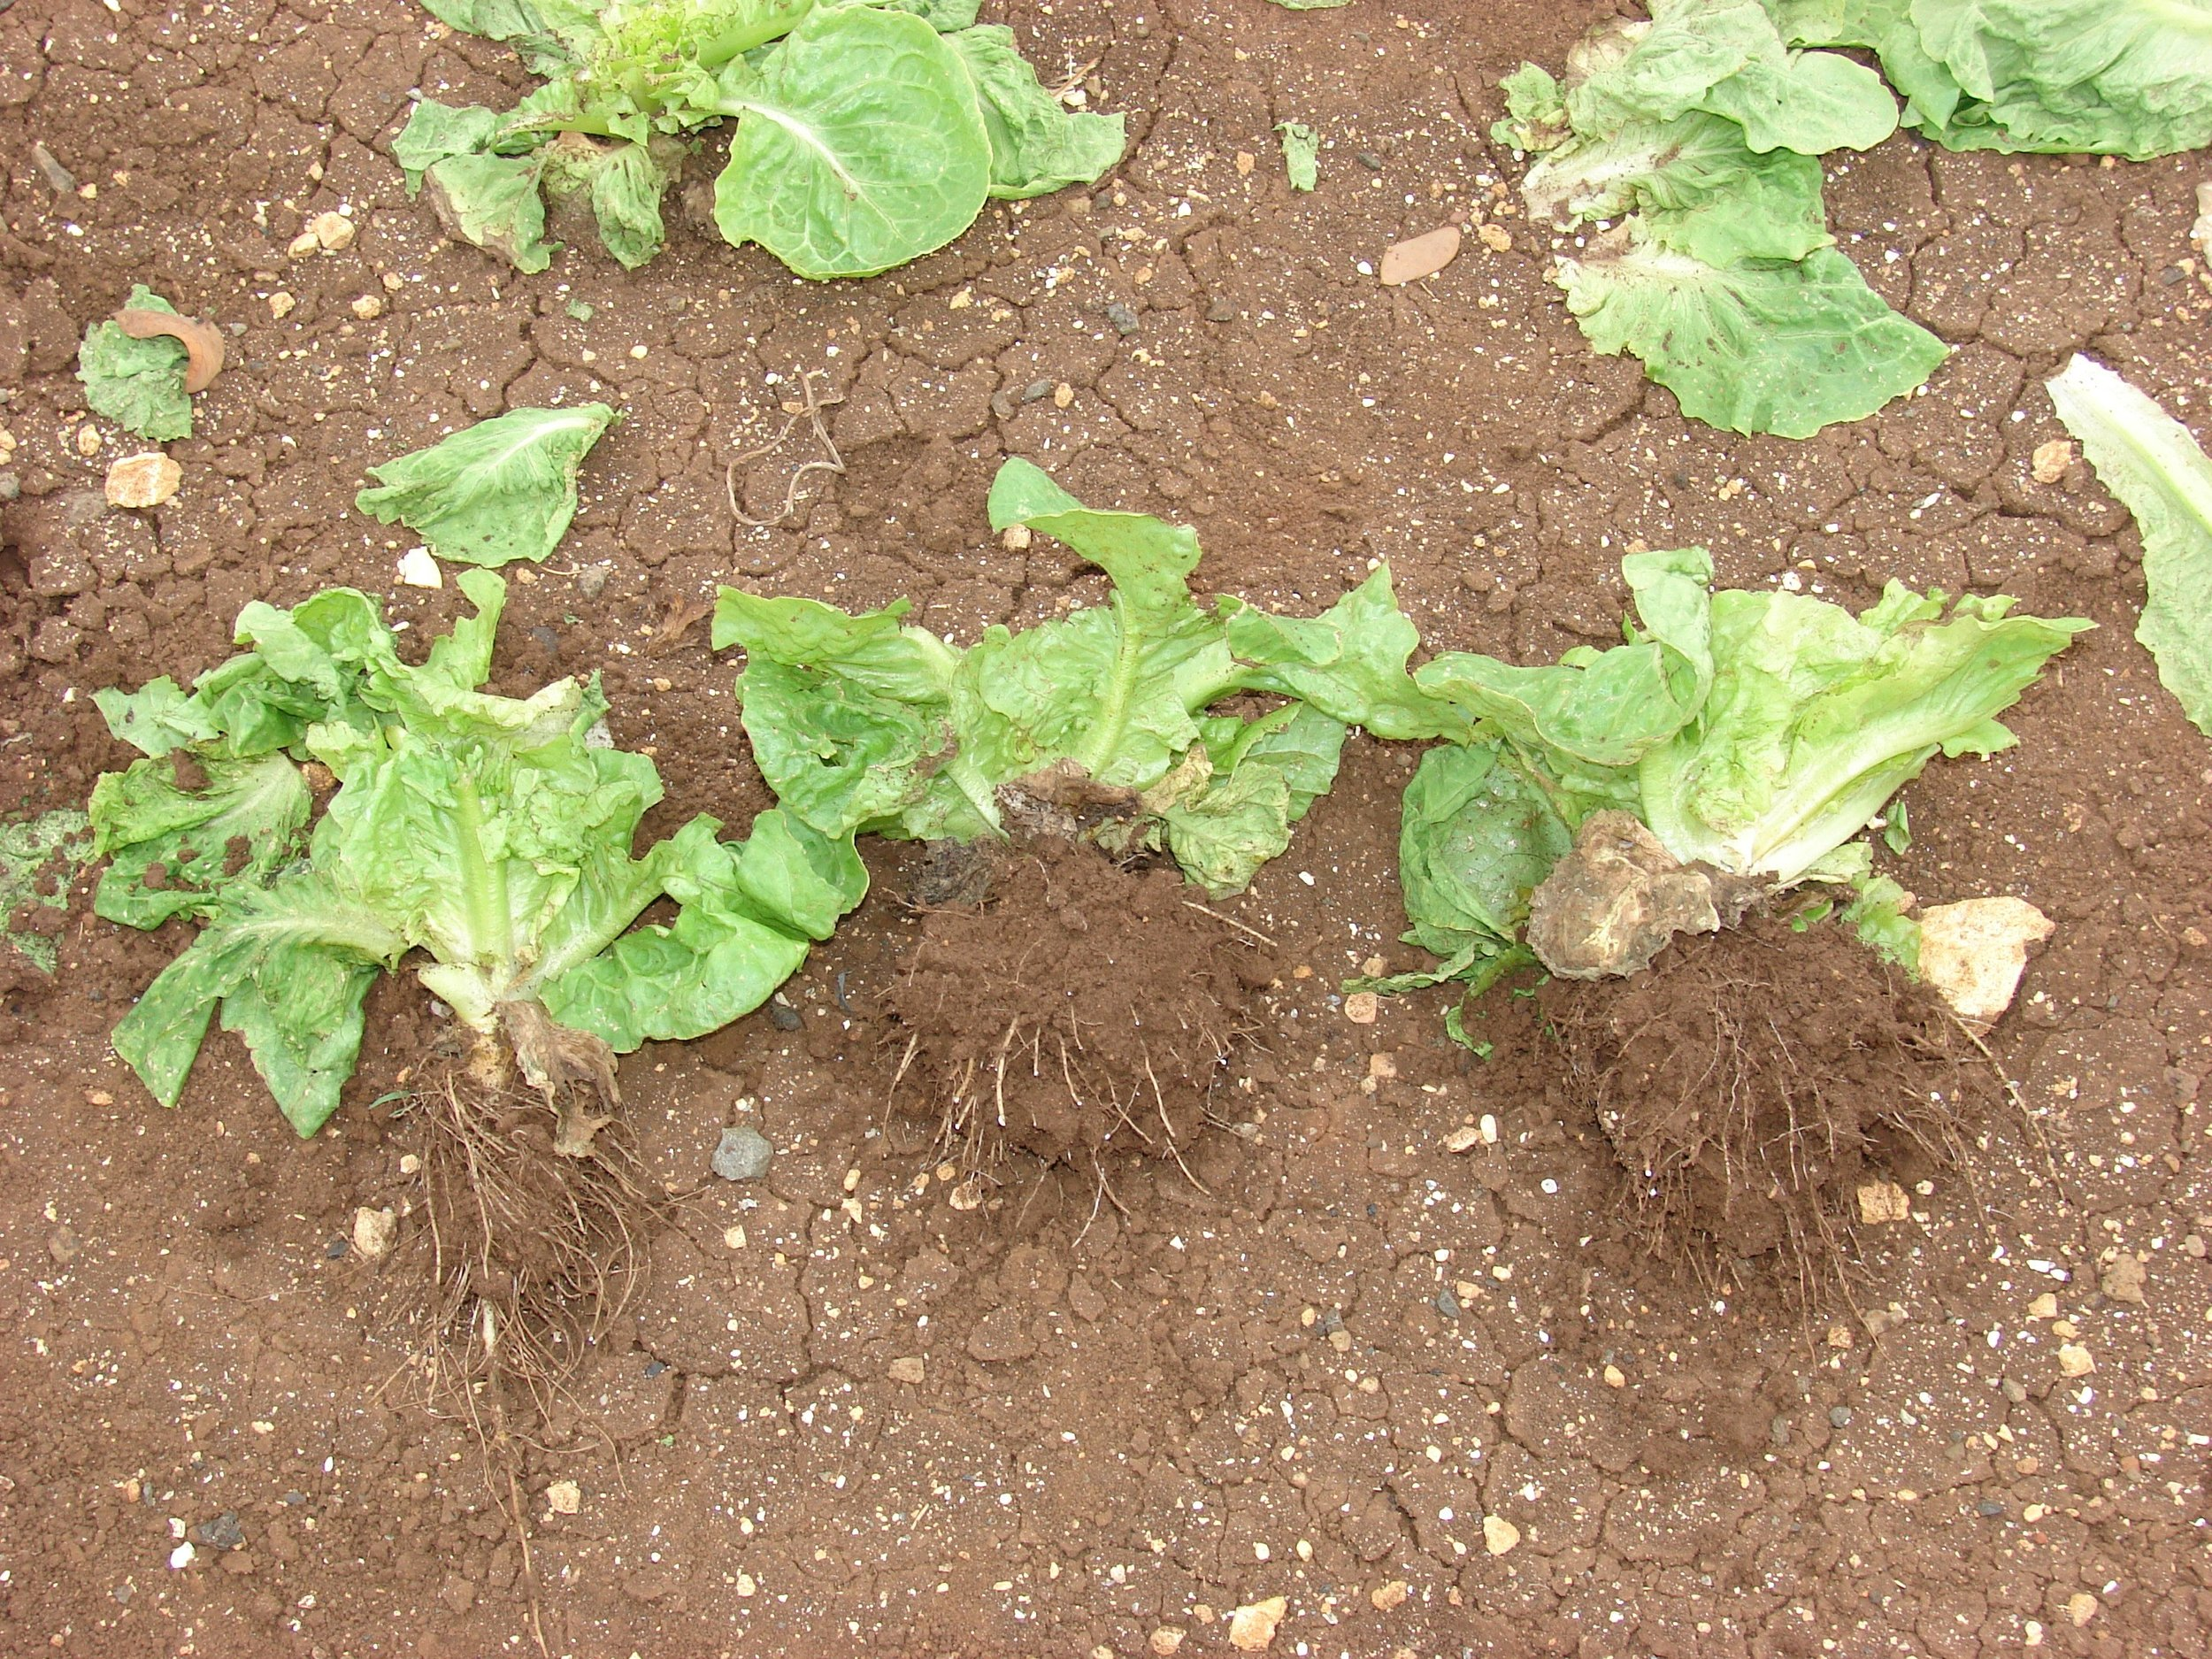 Manoa lettuce after harvest. Showing signs of initial Fusarium wilt damage but plant recovered to harvest. Nice healthy roots.